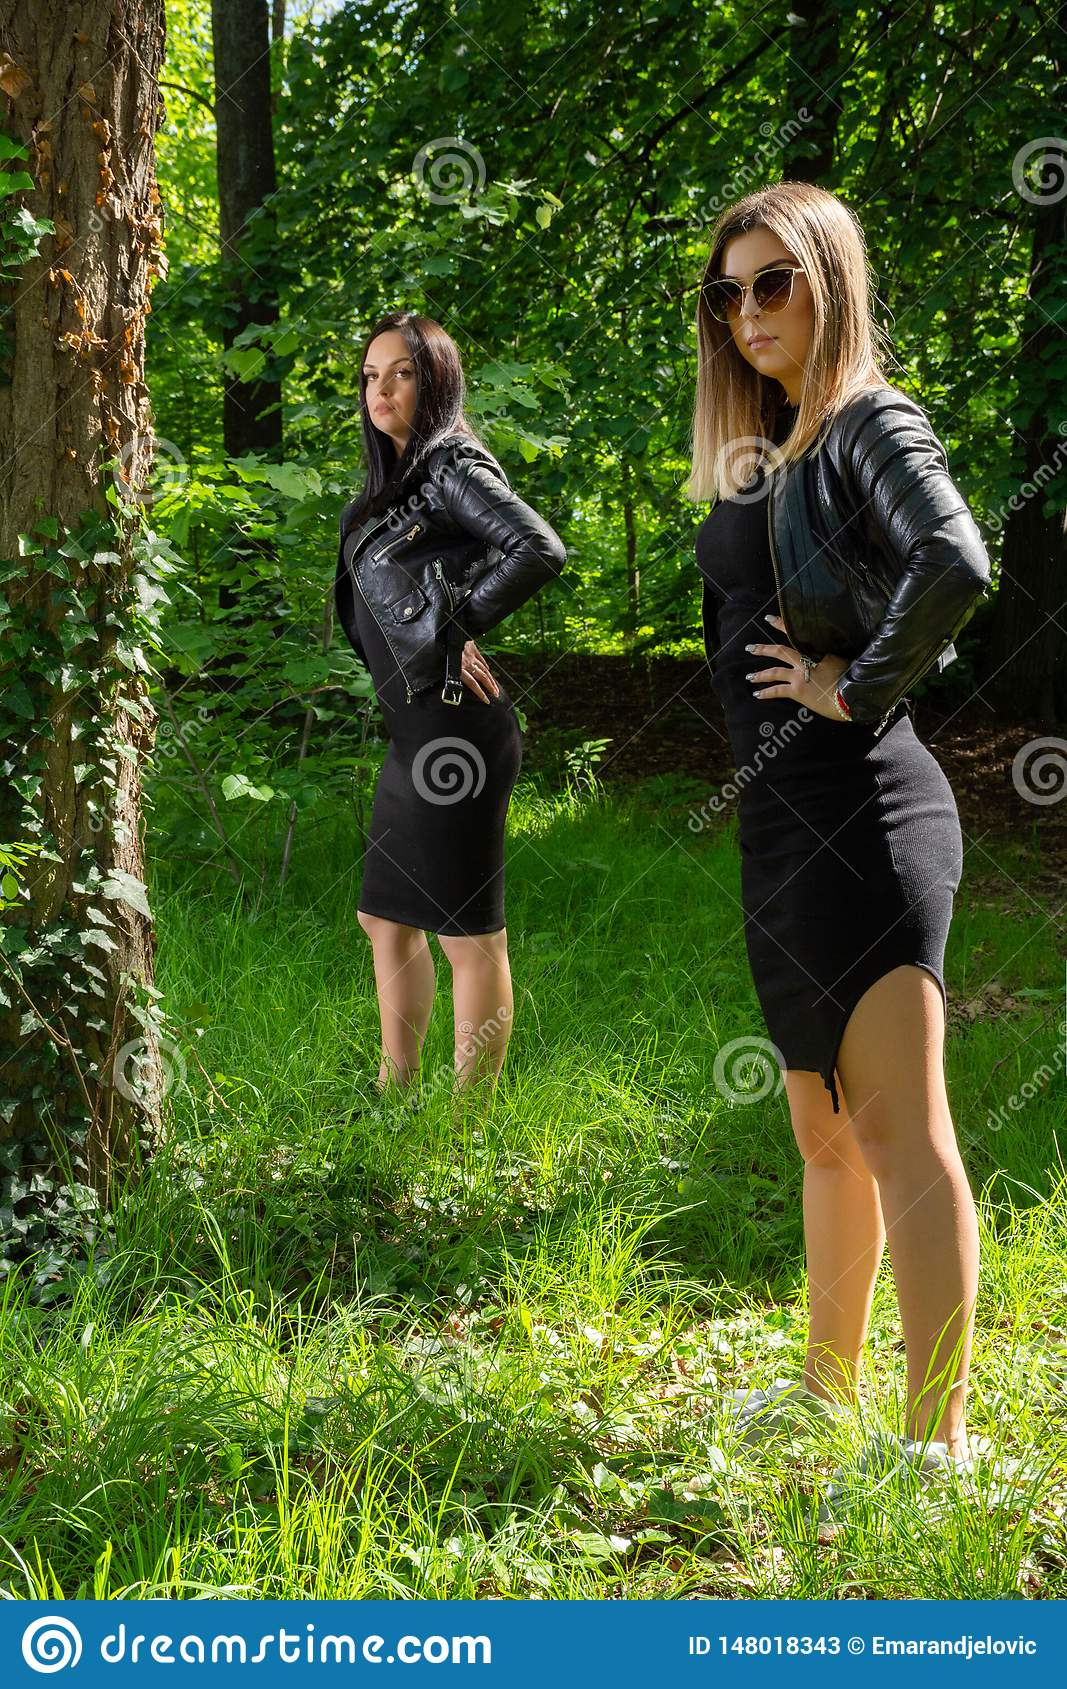 Two beautiful girls posing in a forest on a sunny spring day